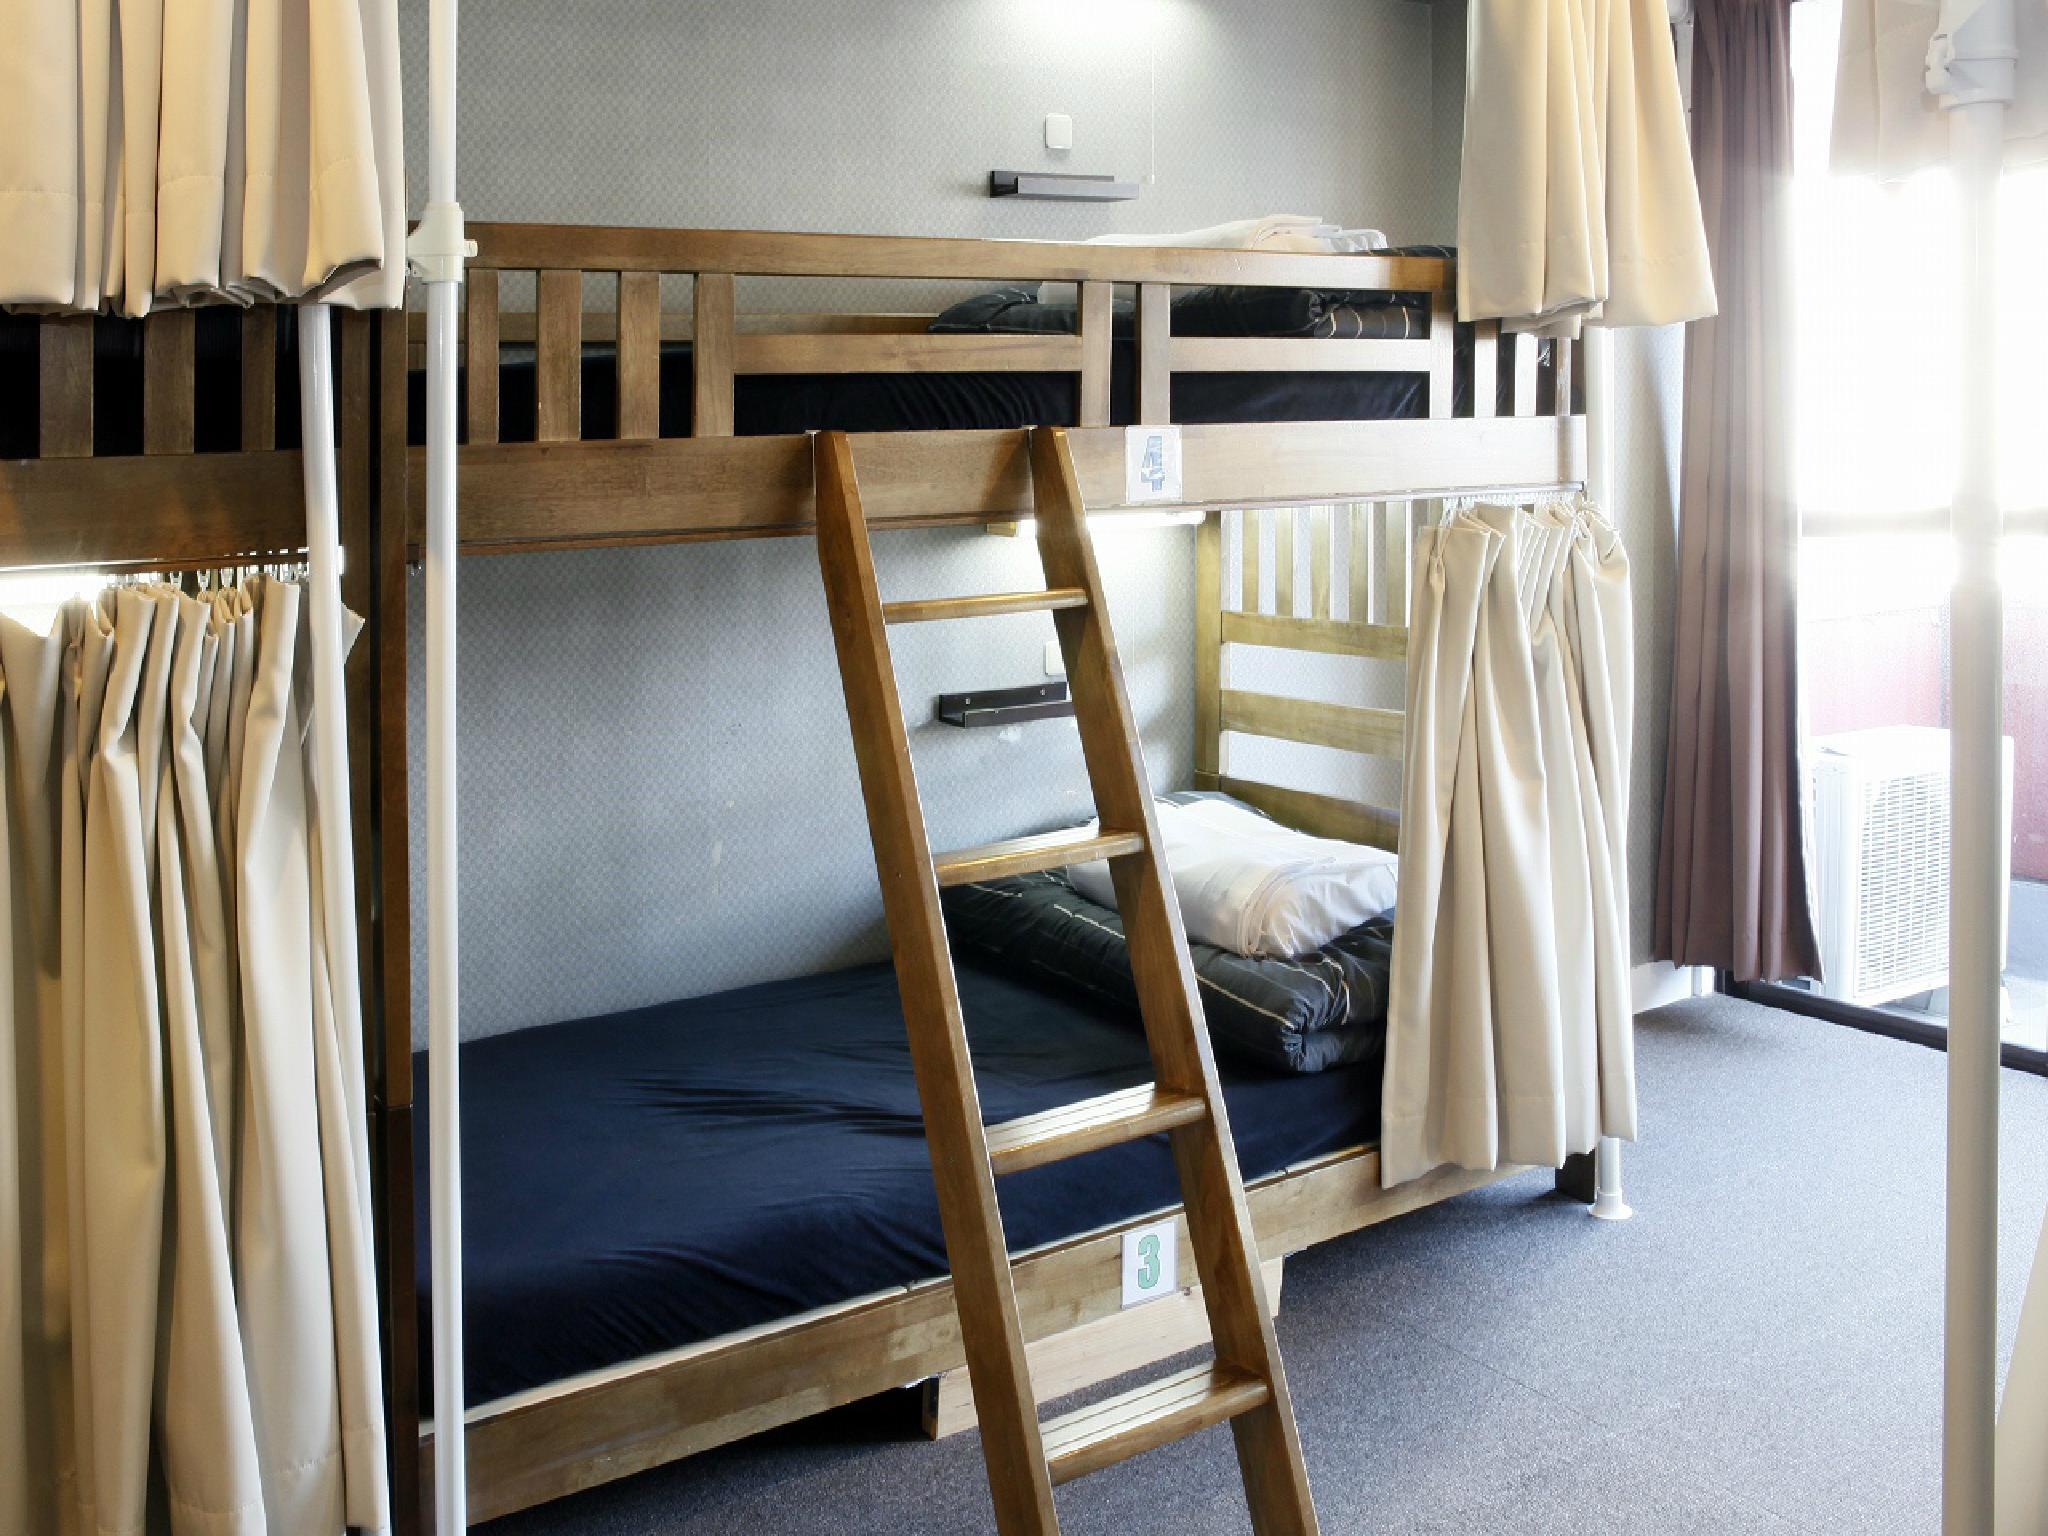 【2張床位】6人宿舍 - 需共用衛浴/限女性 (2 People in 6-Bed Dormitory with Shared Bathroom - Female Only)